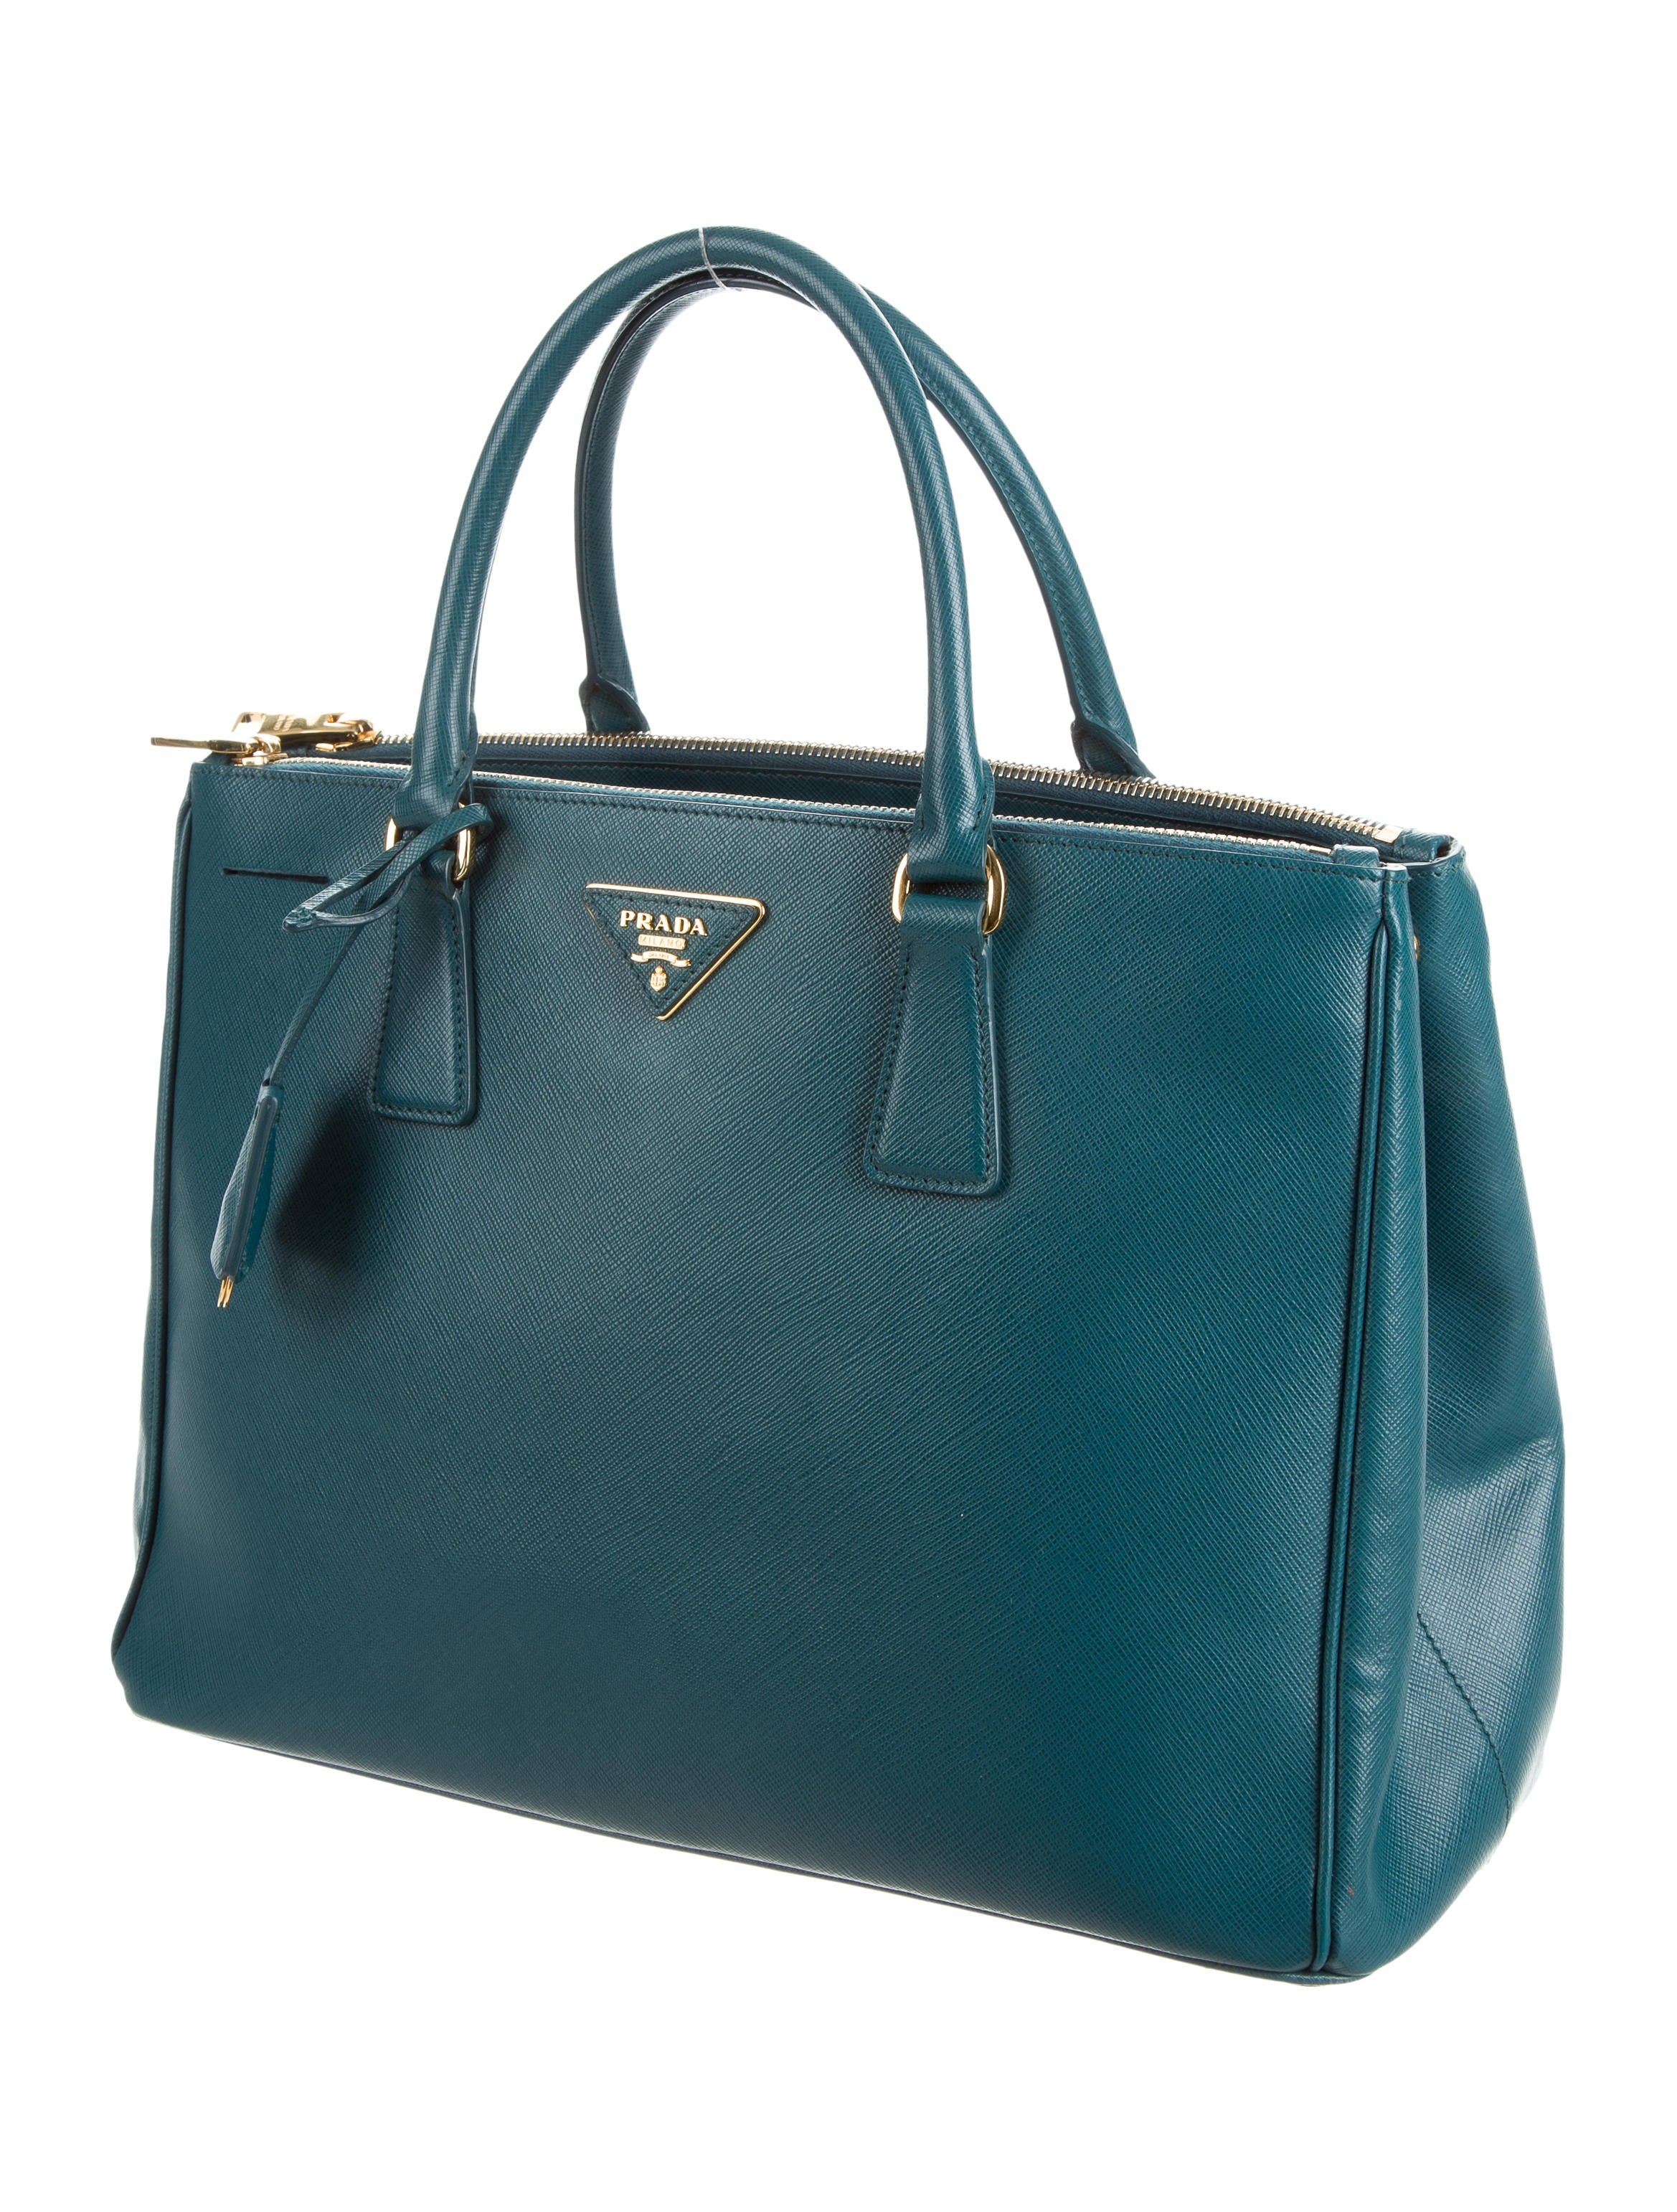 d2e7322fa88cb6 Prada Saffiano Medium Galleria Double Zip Tote | Stanford Center for ...